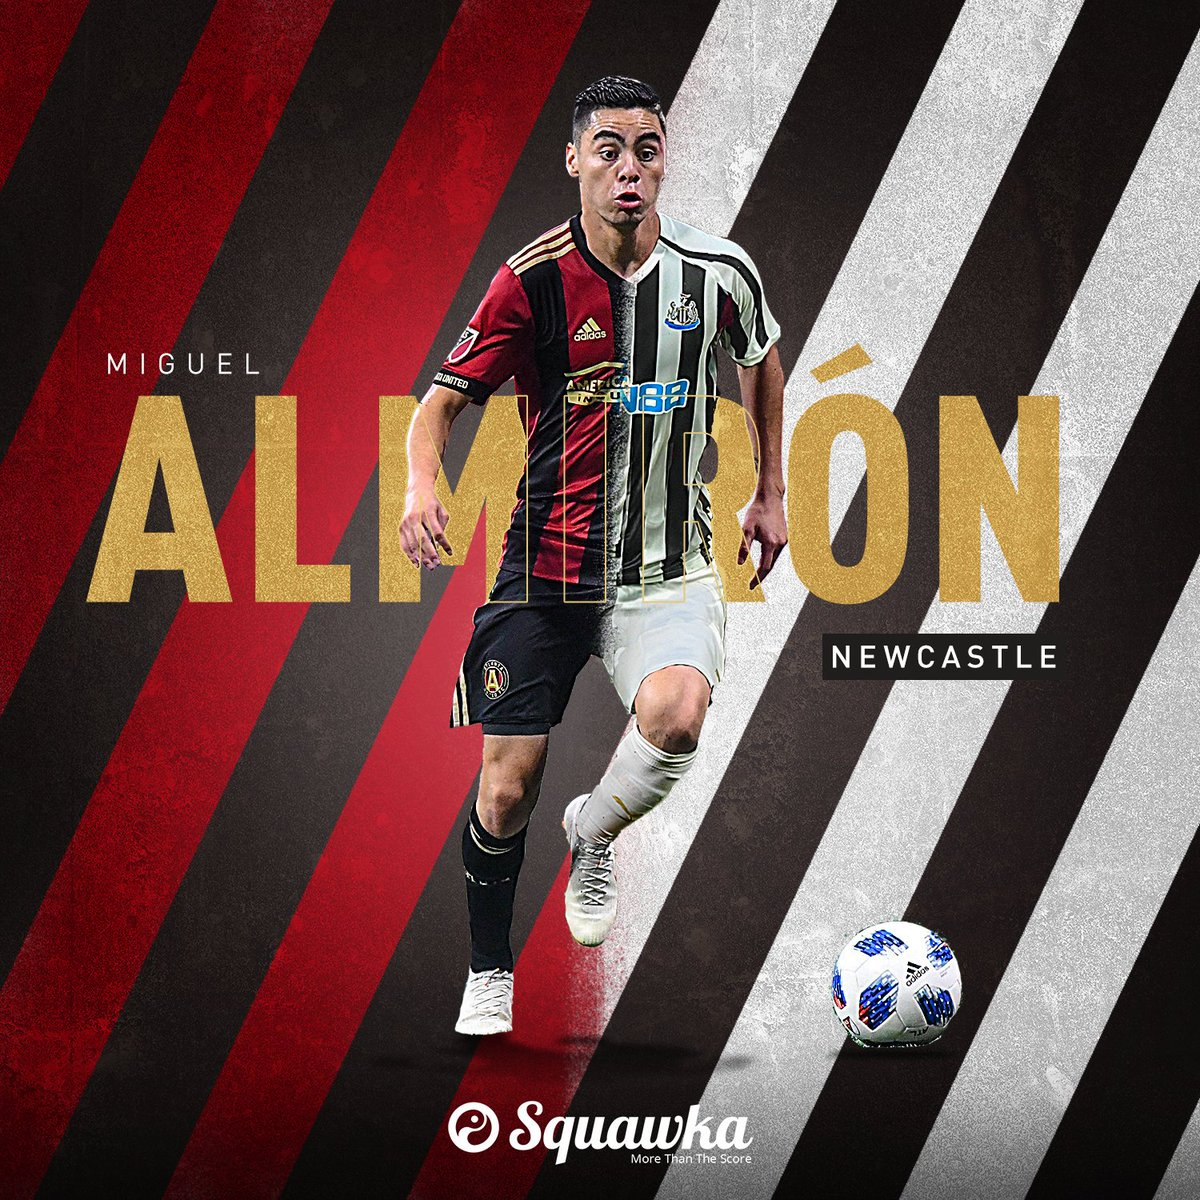 Able Accounts Make Debut >> Squawka News On Twitter Explained Why Miguel Almiron May Not Be